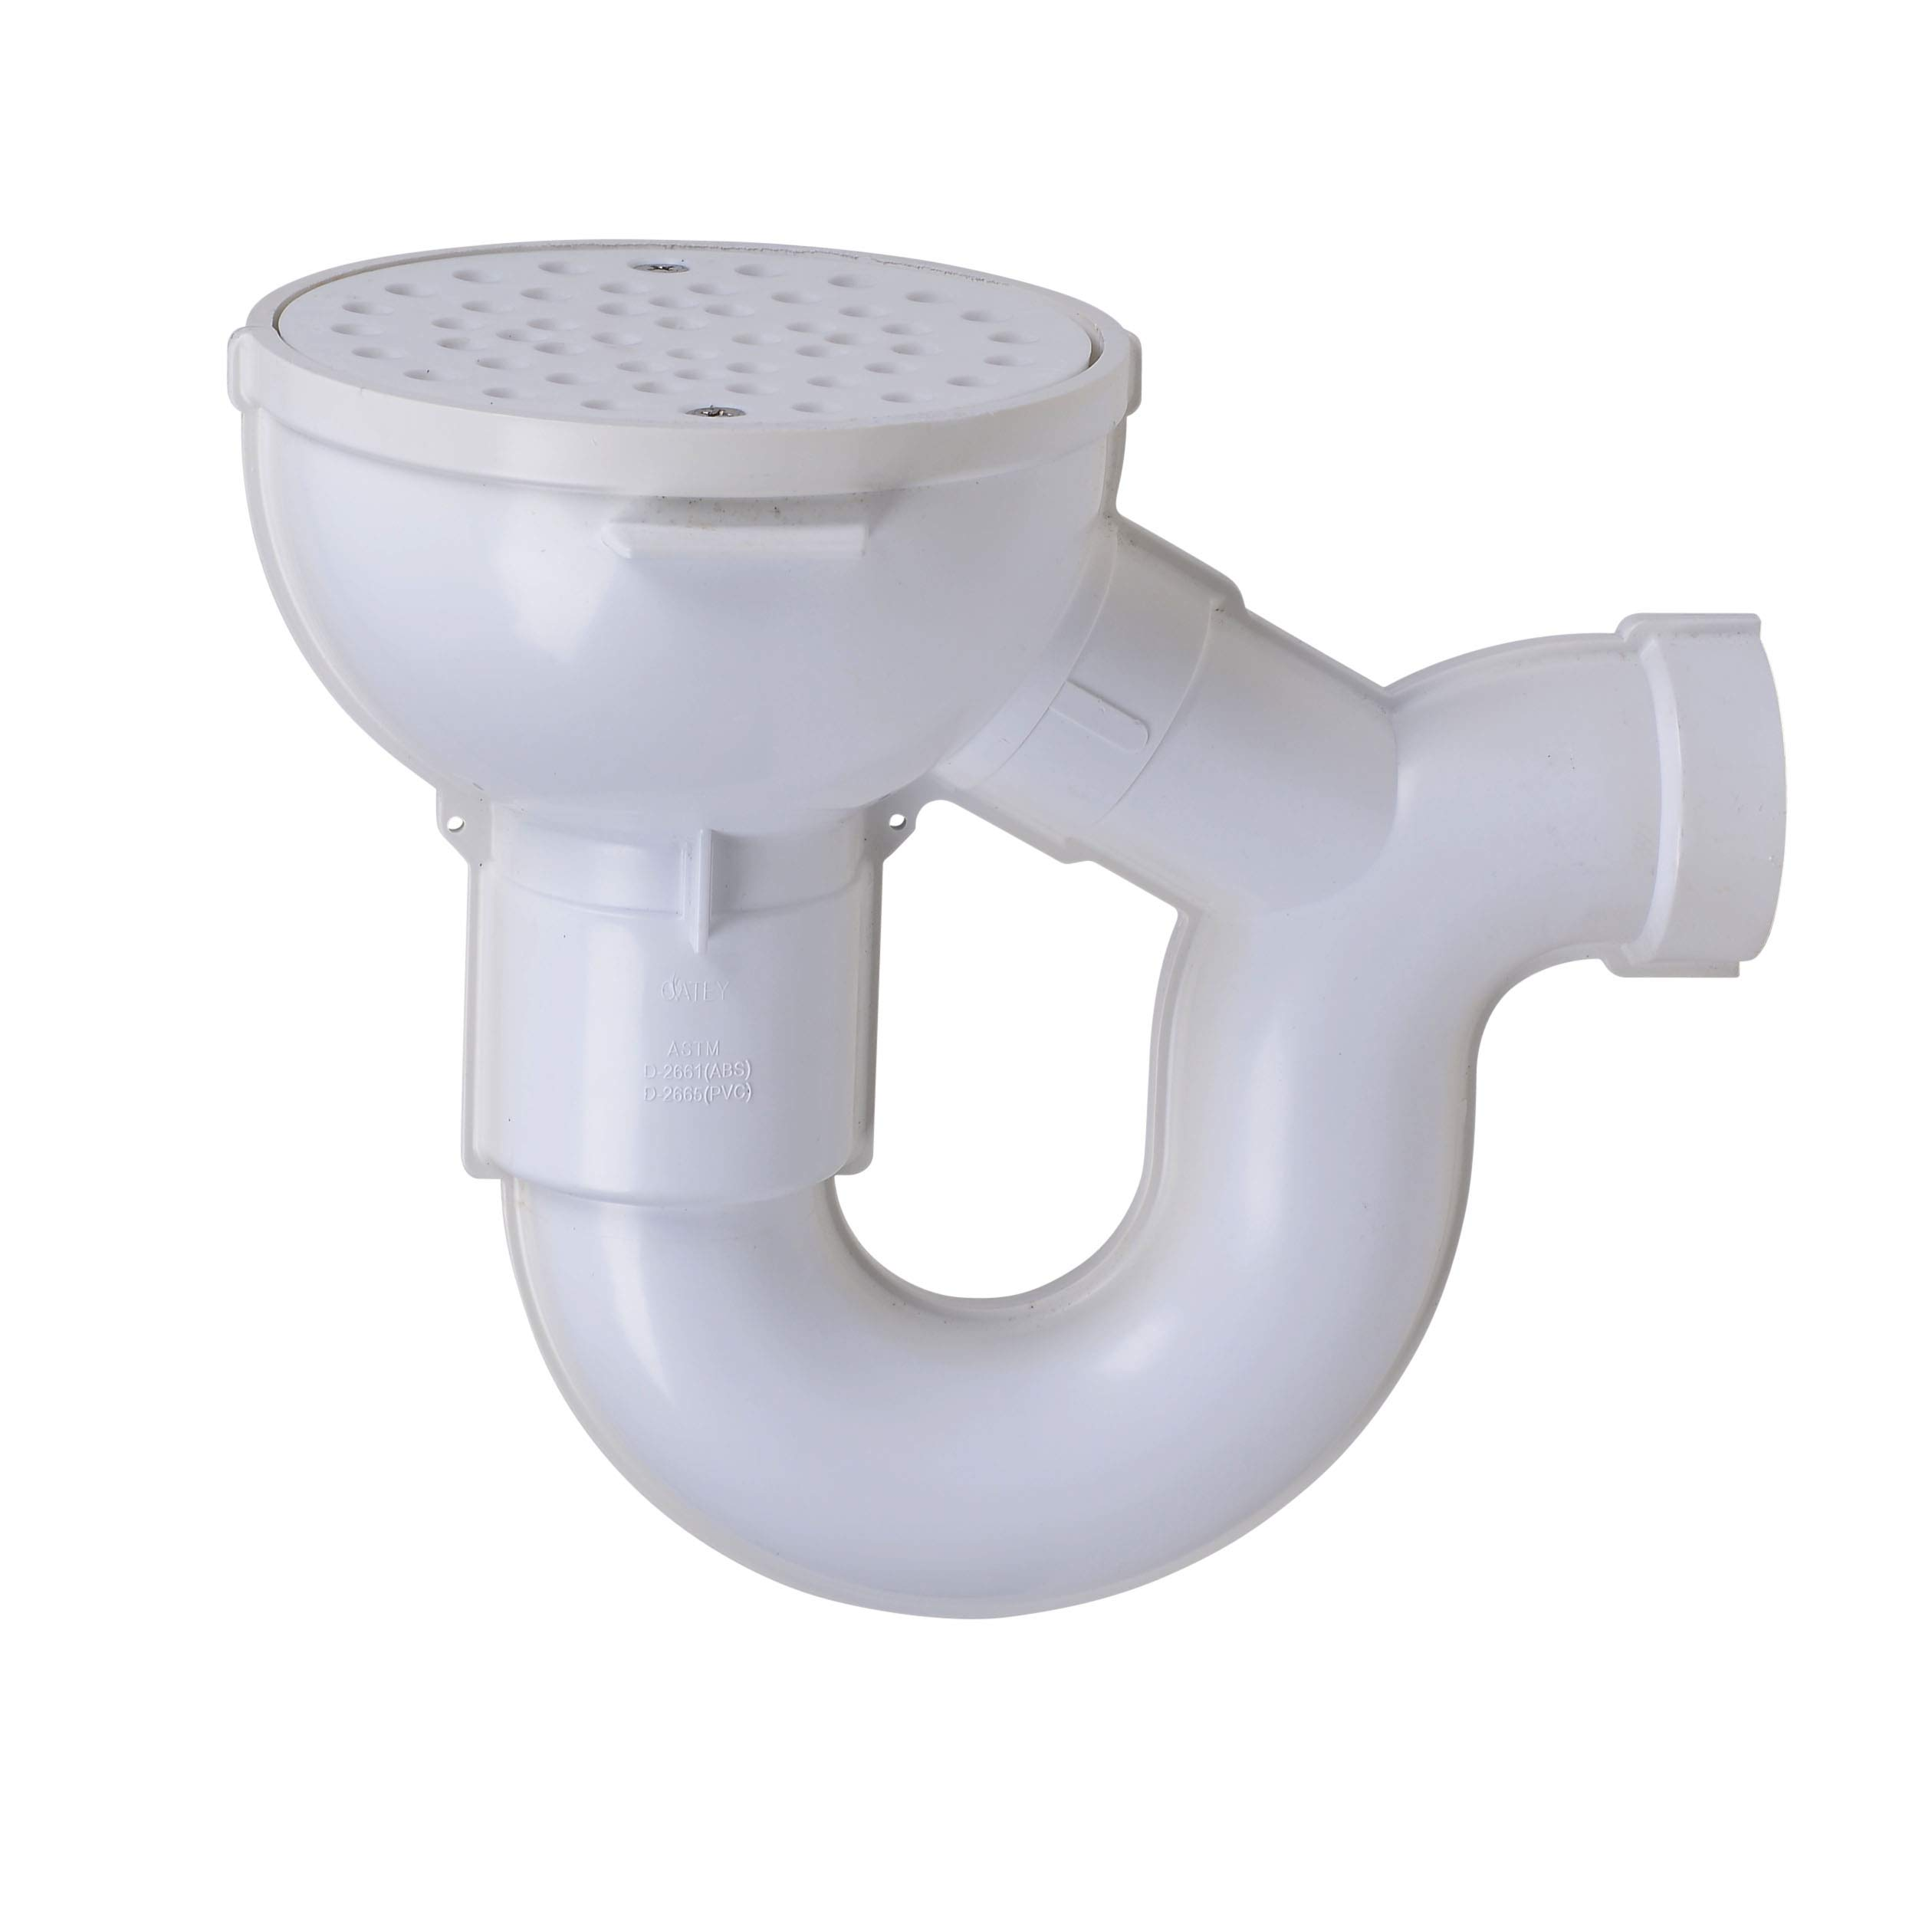 Oatey 42724 Floor Drain with P-Trap, 2-Inch, White